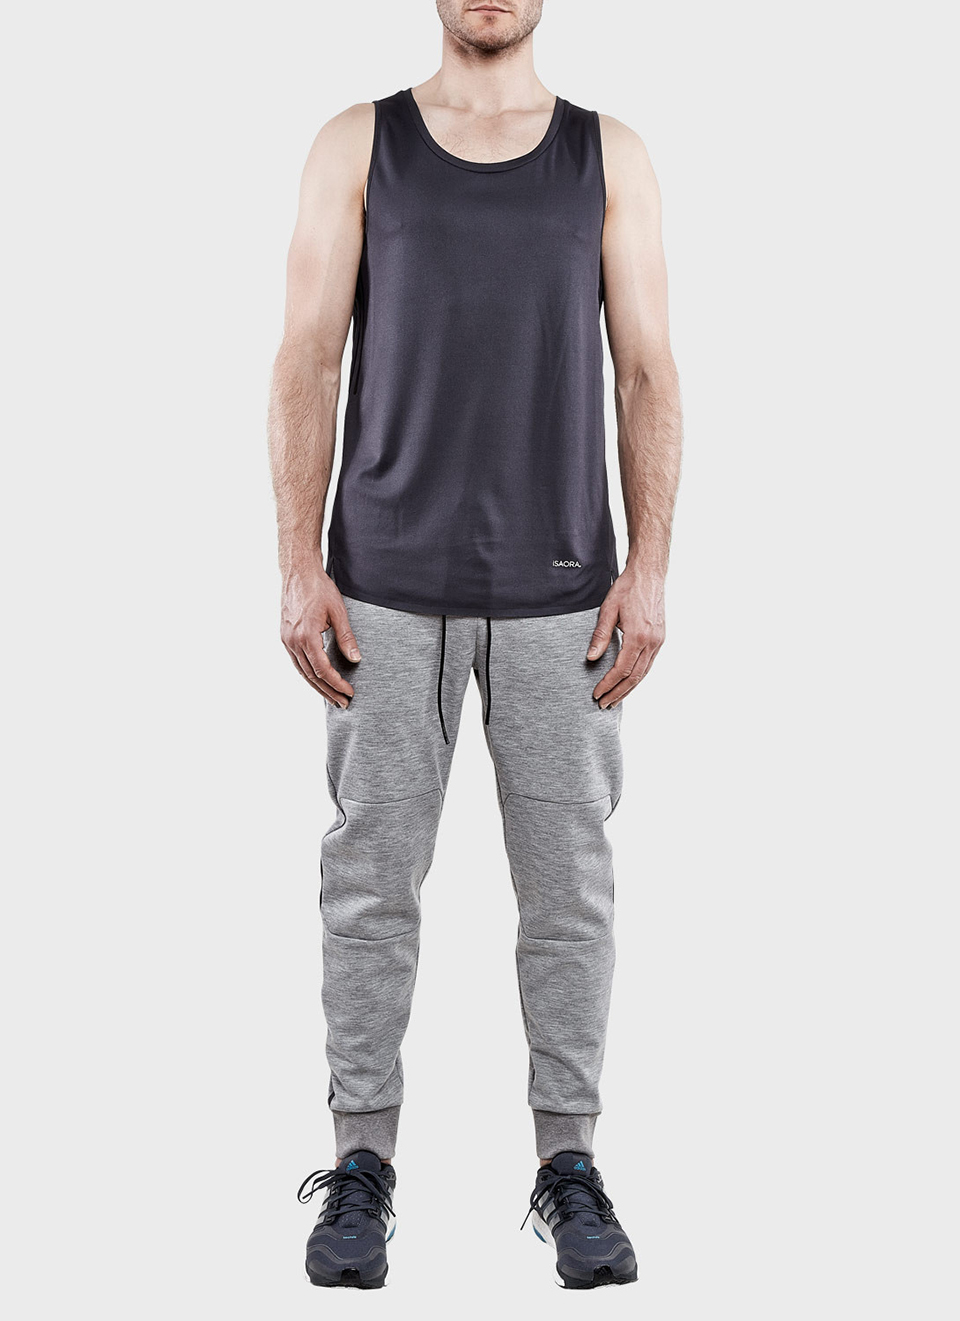 Isaora Bonded Sweatpants